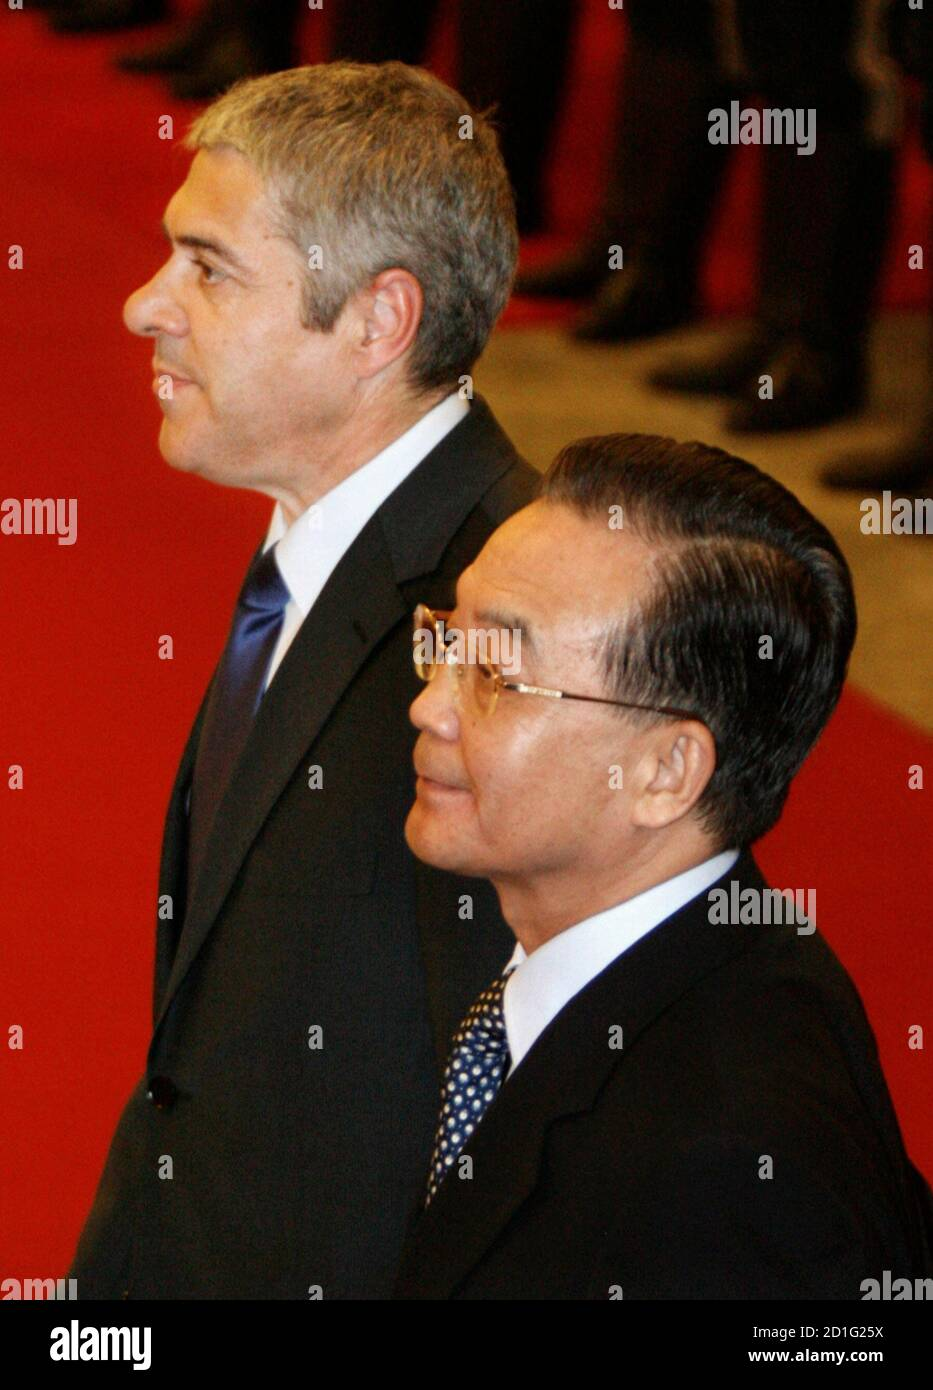 Chinese Prime Minister Wen Jiabao and visiting Portuguese counterpart Jose Socrates (L) review the honour guard during a welcoming ceremony at the Great Hall of the People in Beijing, January 31, 2007.  REUTERS/Claro Cortes IV   (CHINA) Banque D'Images